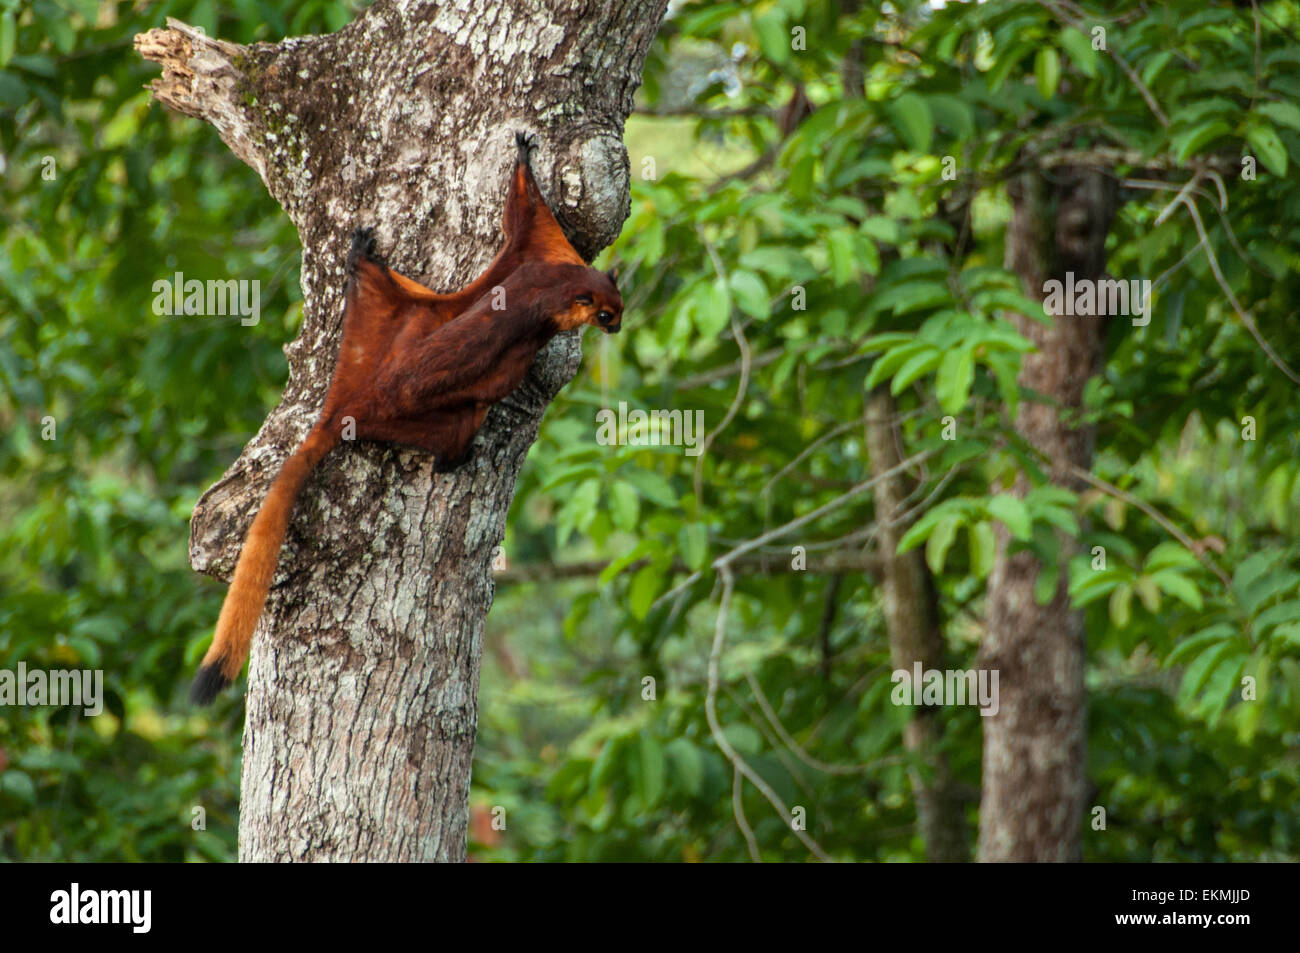 Red flying squirrel ready to fly off from a jungle tree, Sabah, Borneo, Malaysia Stock Photo